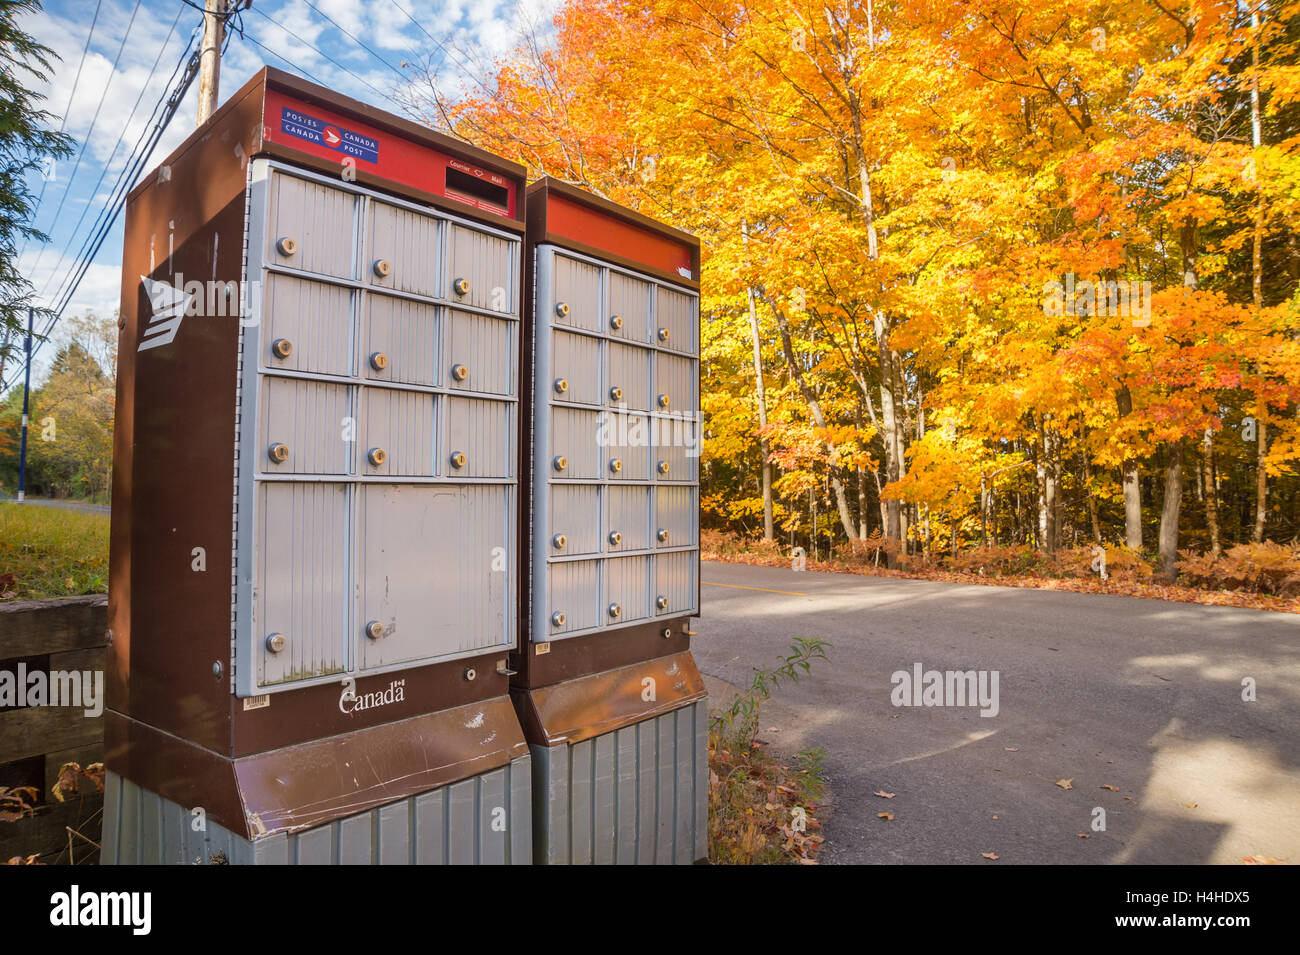 Canada Post Rural Group Mailboxes In Laurentides, in Autumn - Stock Image